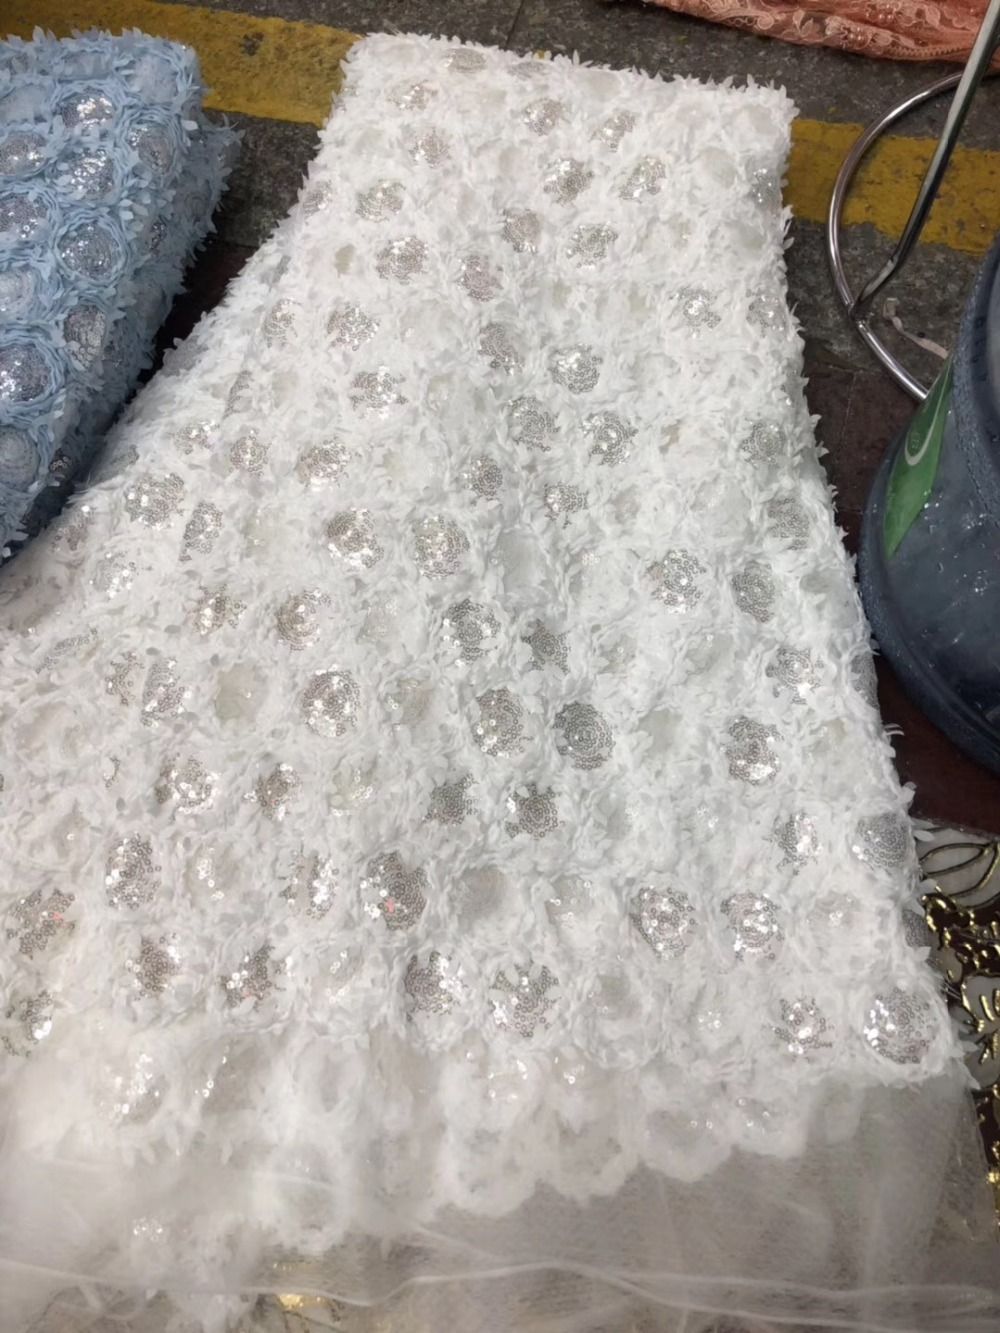 nigerian lace for sewing sequence fabric high quality french net lace 2019 5yard/lotnigerian lace for sewing sequence fabric high quality french net lace 2019 5yard/lot